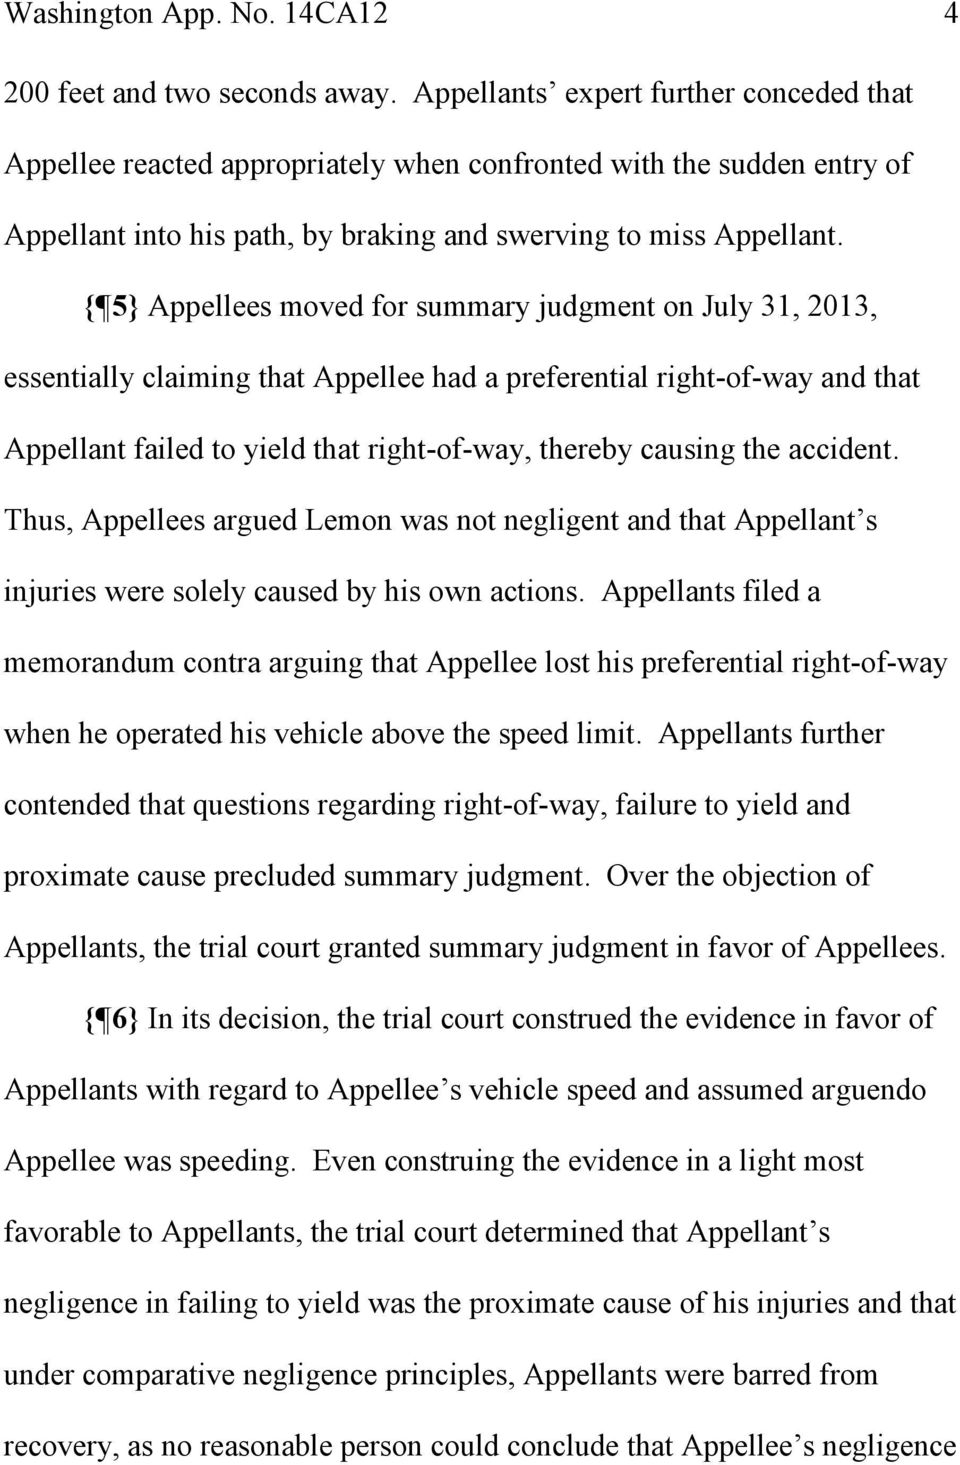 { 5} Appellees moved for summary judgment on July 31, 2013, essentially claiming that Appellee had a preferential right-of-way and that Appellant failed to yield that right-of-way, thereby causing